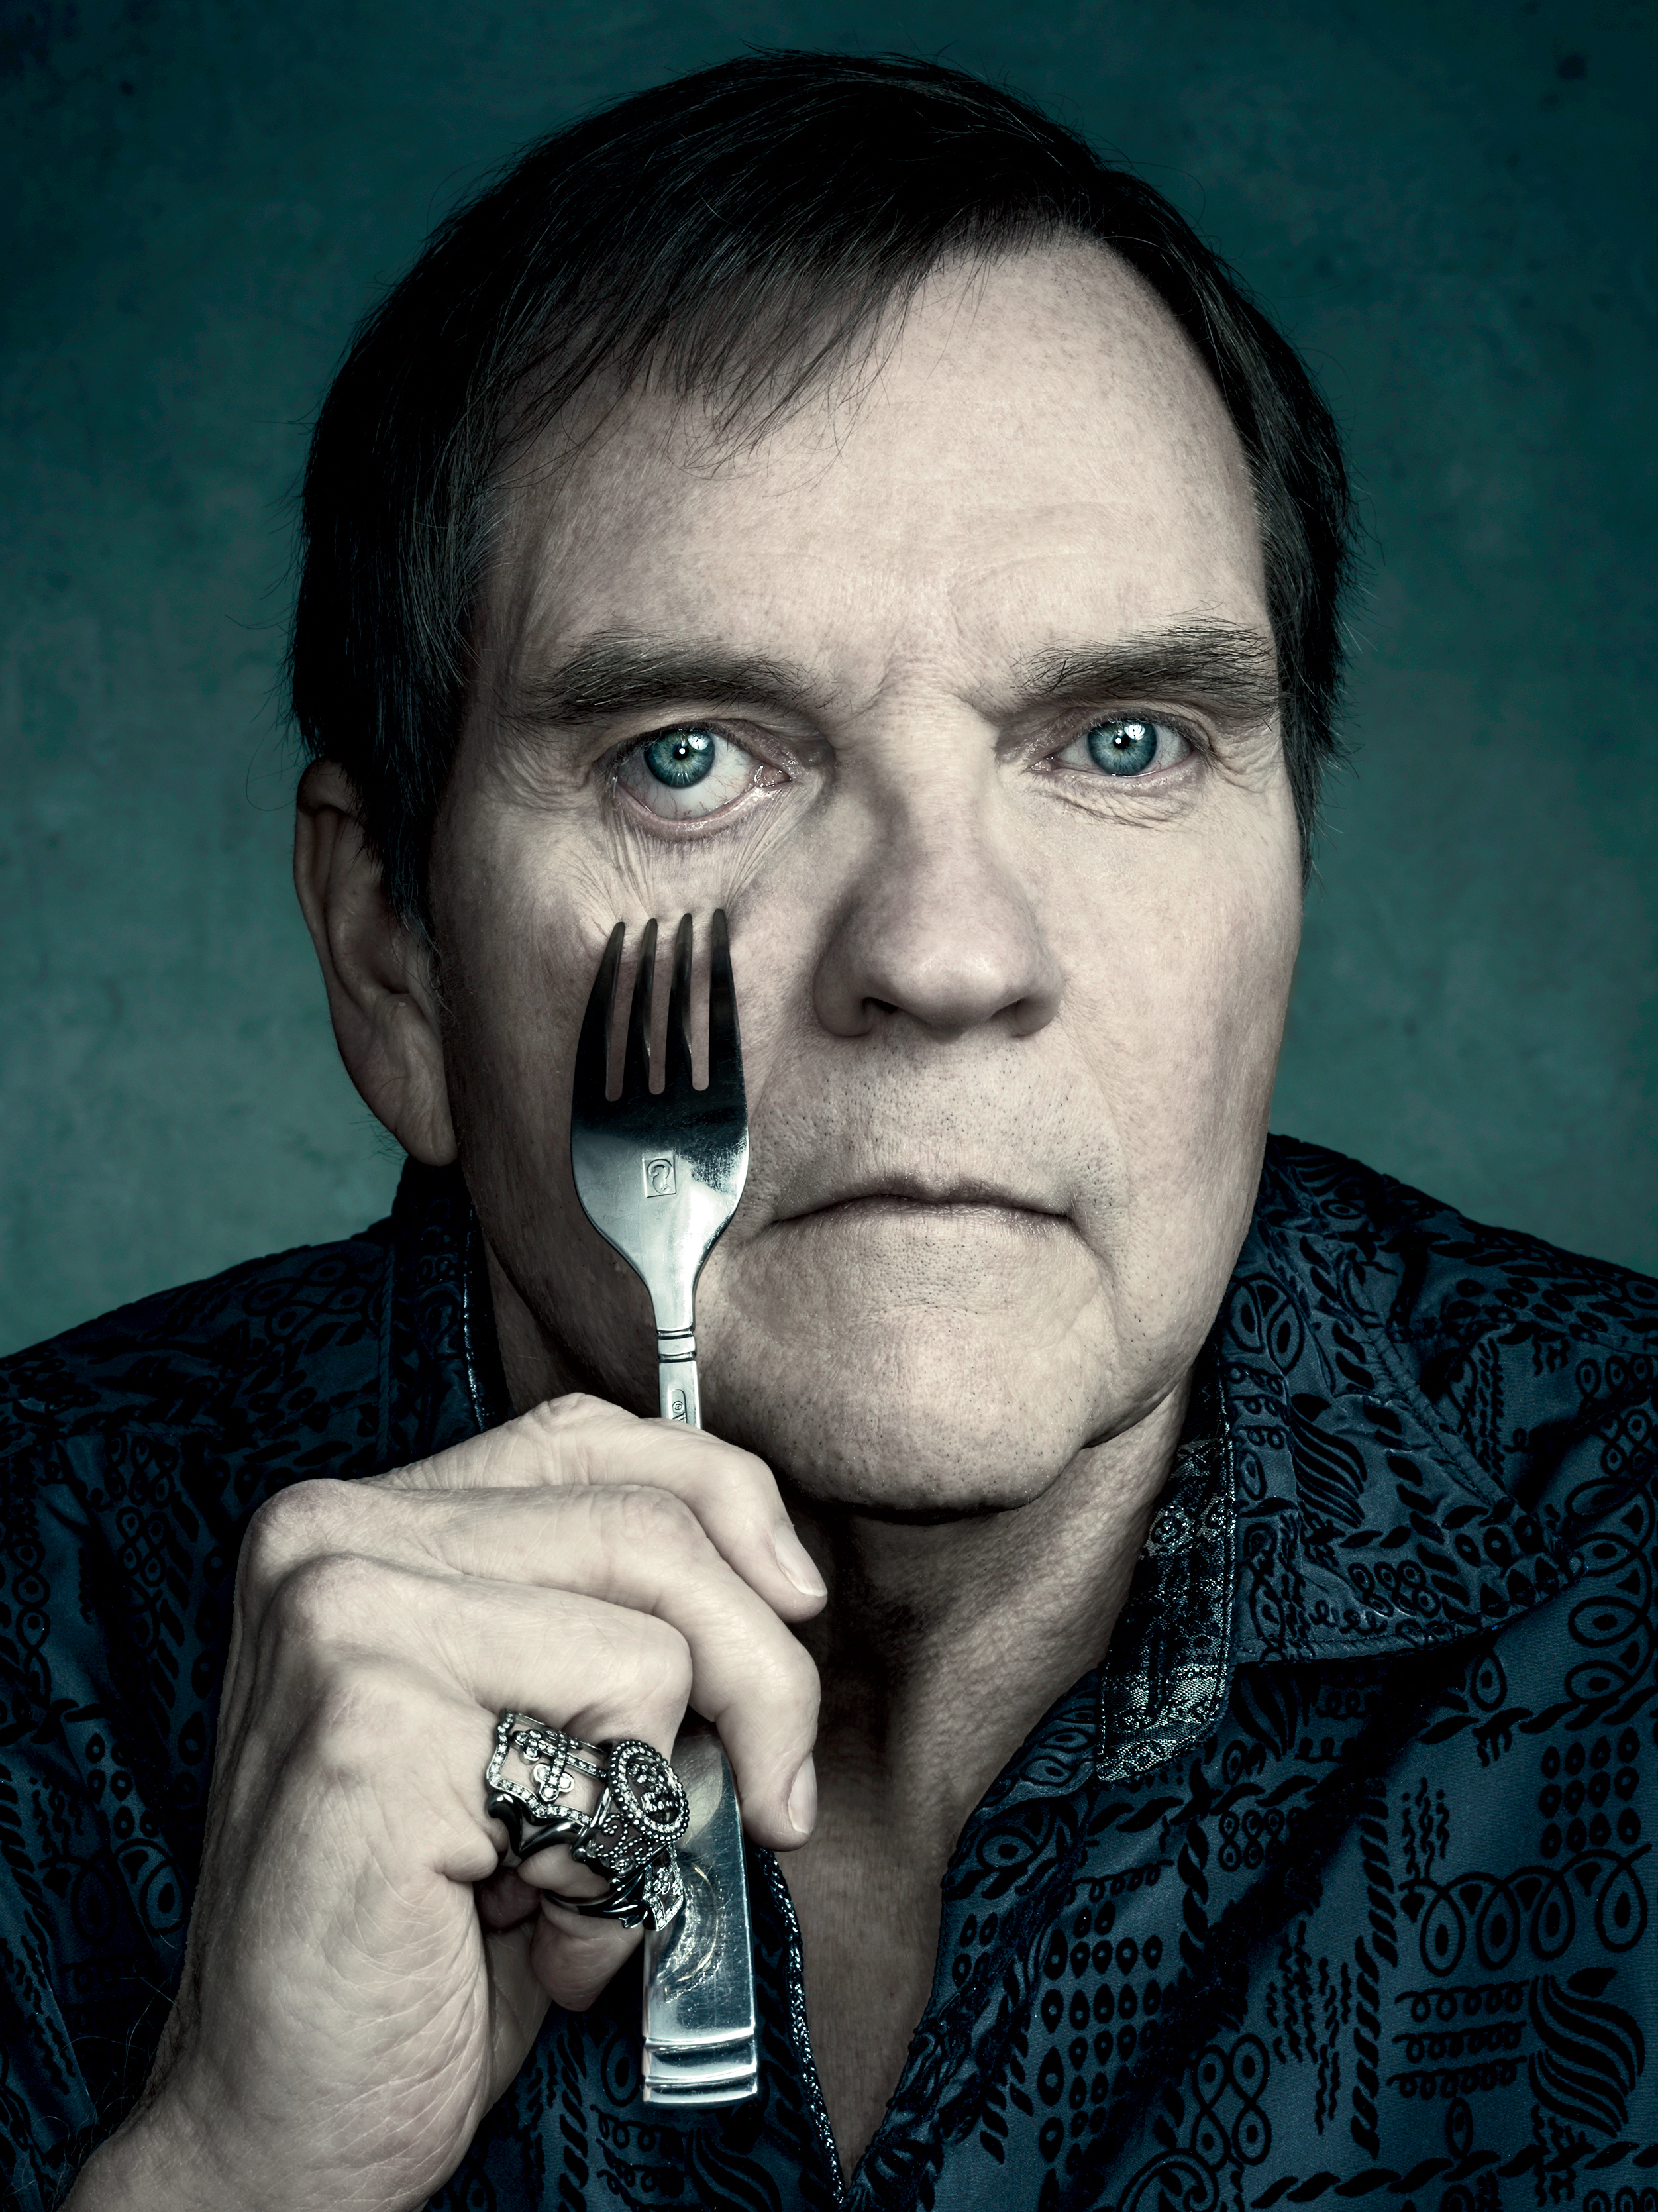 Meat loaf sues over use of bat out of hell naked (97 image)